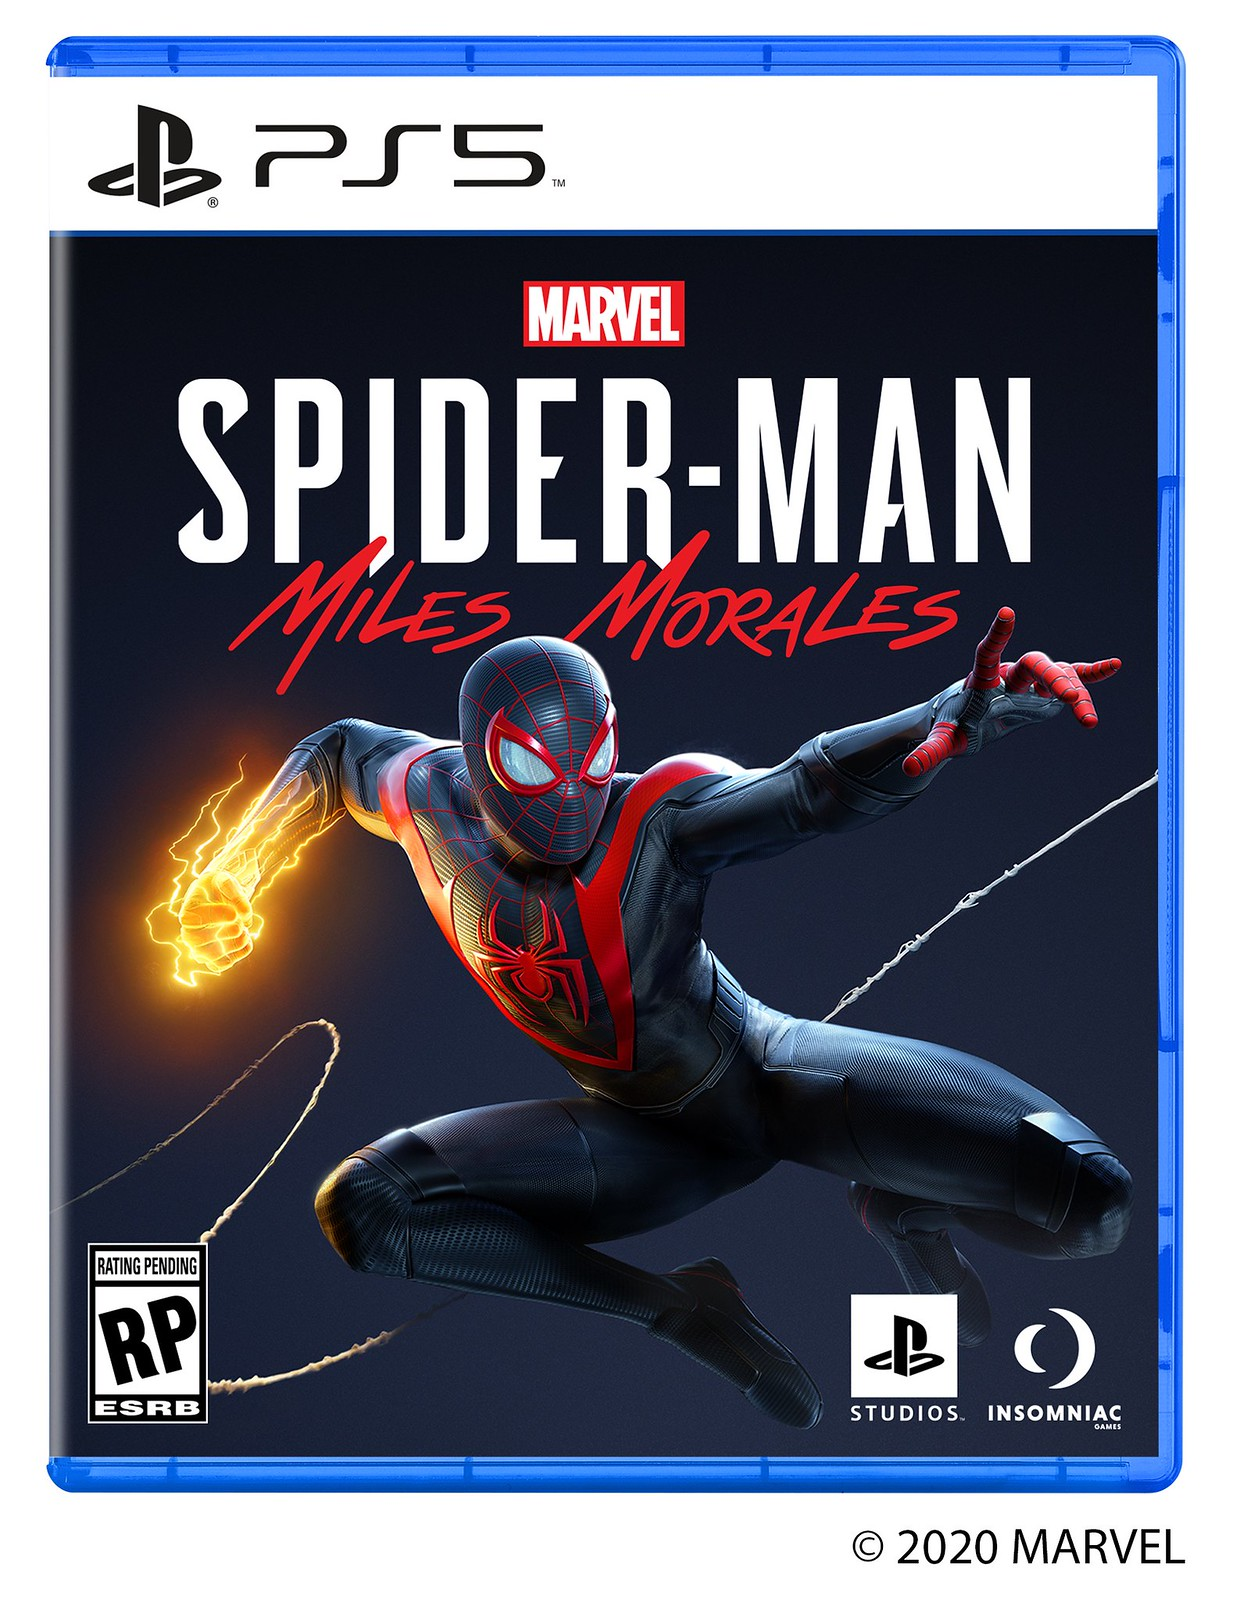 Spider-Man Miles Morales - PS5 (Box art)